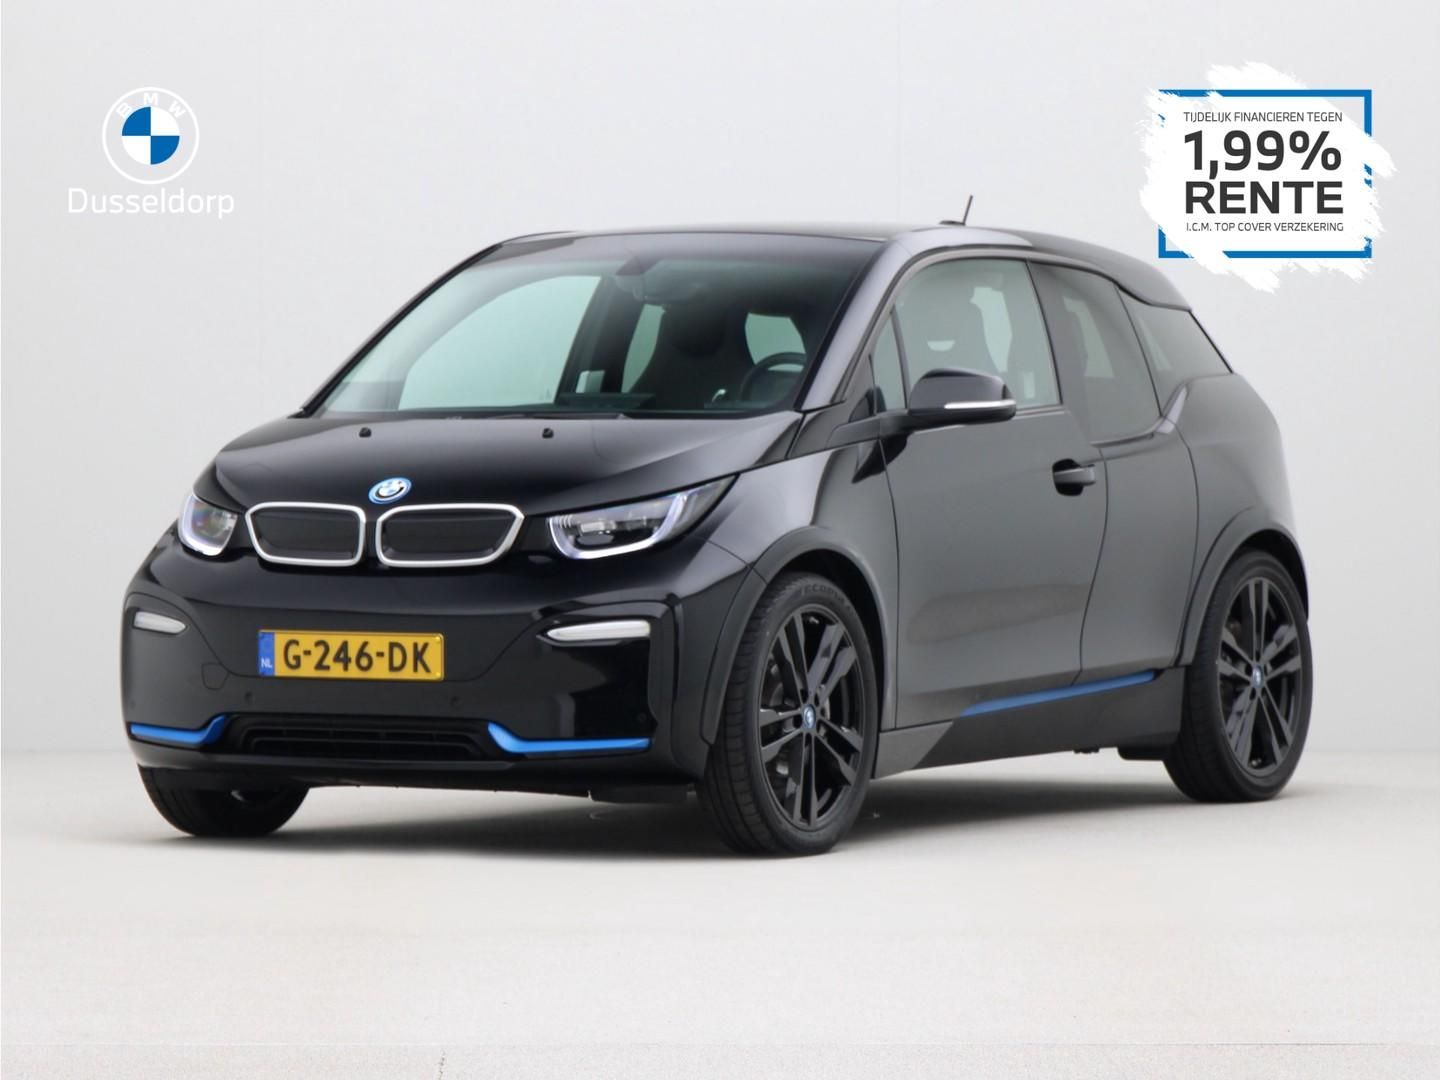 Bmw I3 S executive edition 120ah 42 kwh, 4% bijtelling